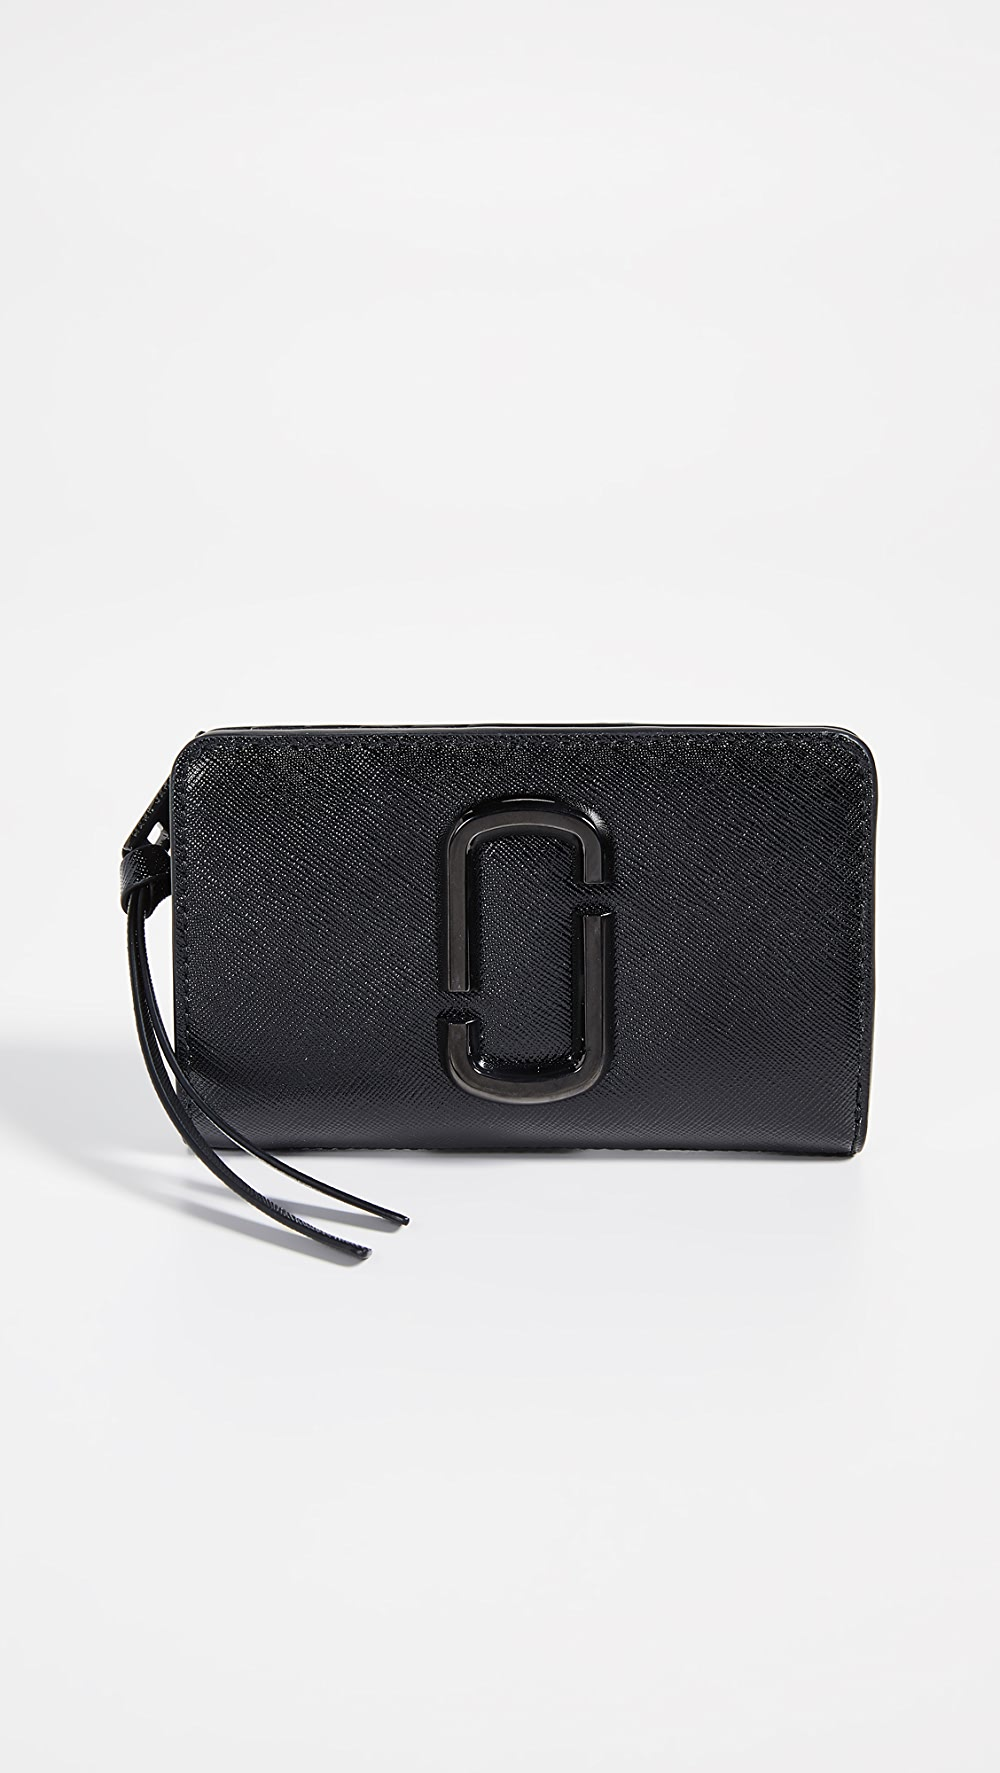 Amiable The Marc Jacobs - Snapshot Compact Wallet Traveling